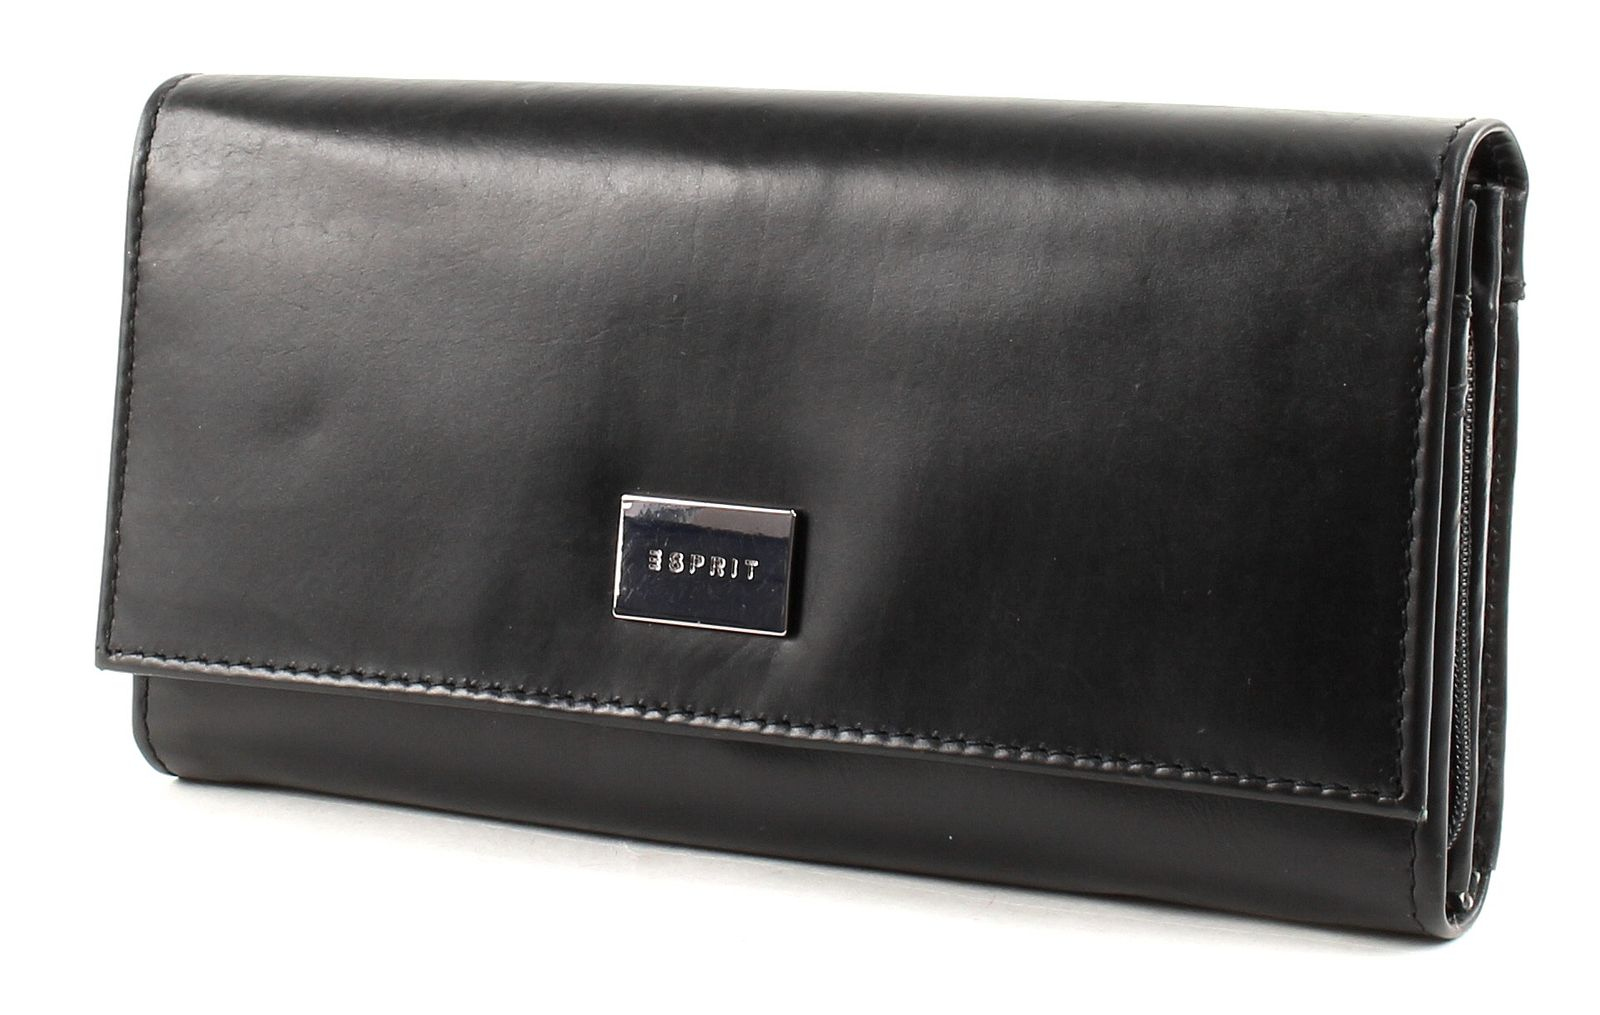 9600a038d821 ... Cash on Delivery, Invoice and sofortüberweisung.deESPRIT Susie Flap  Clutch Wallet Black / 59,99 €*Only possible if you pay by Paypal, Amazon  Payments, ...